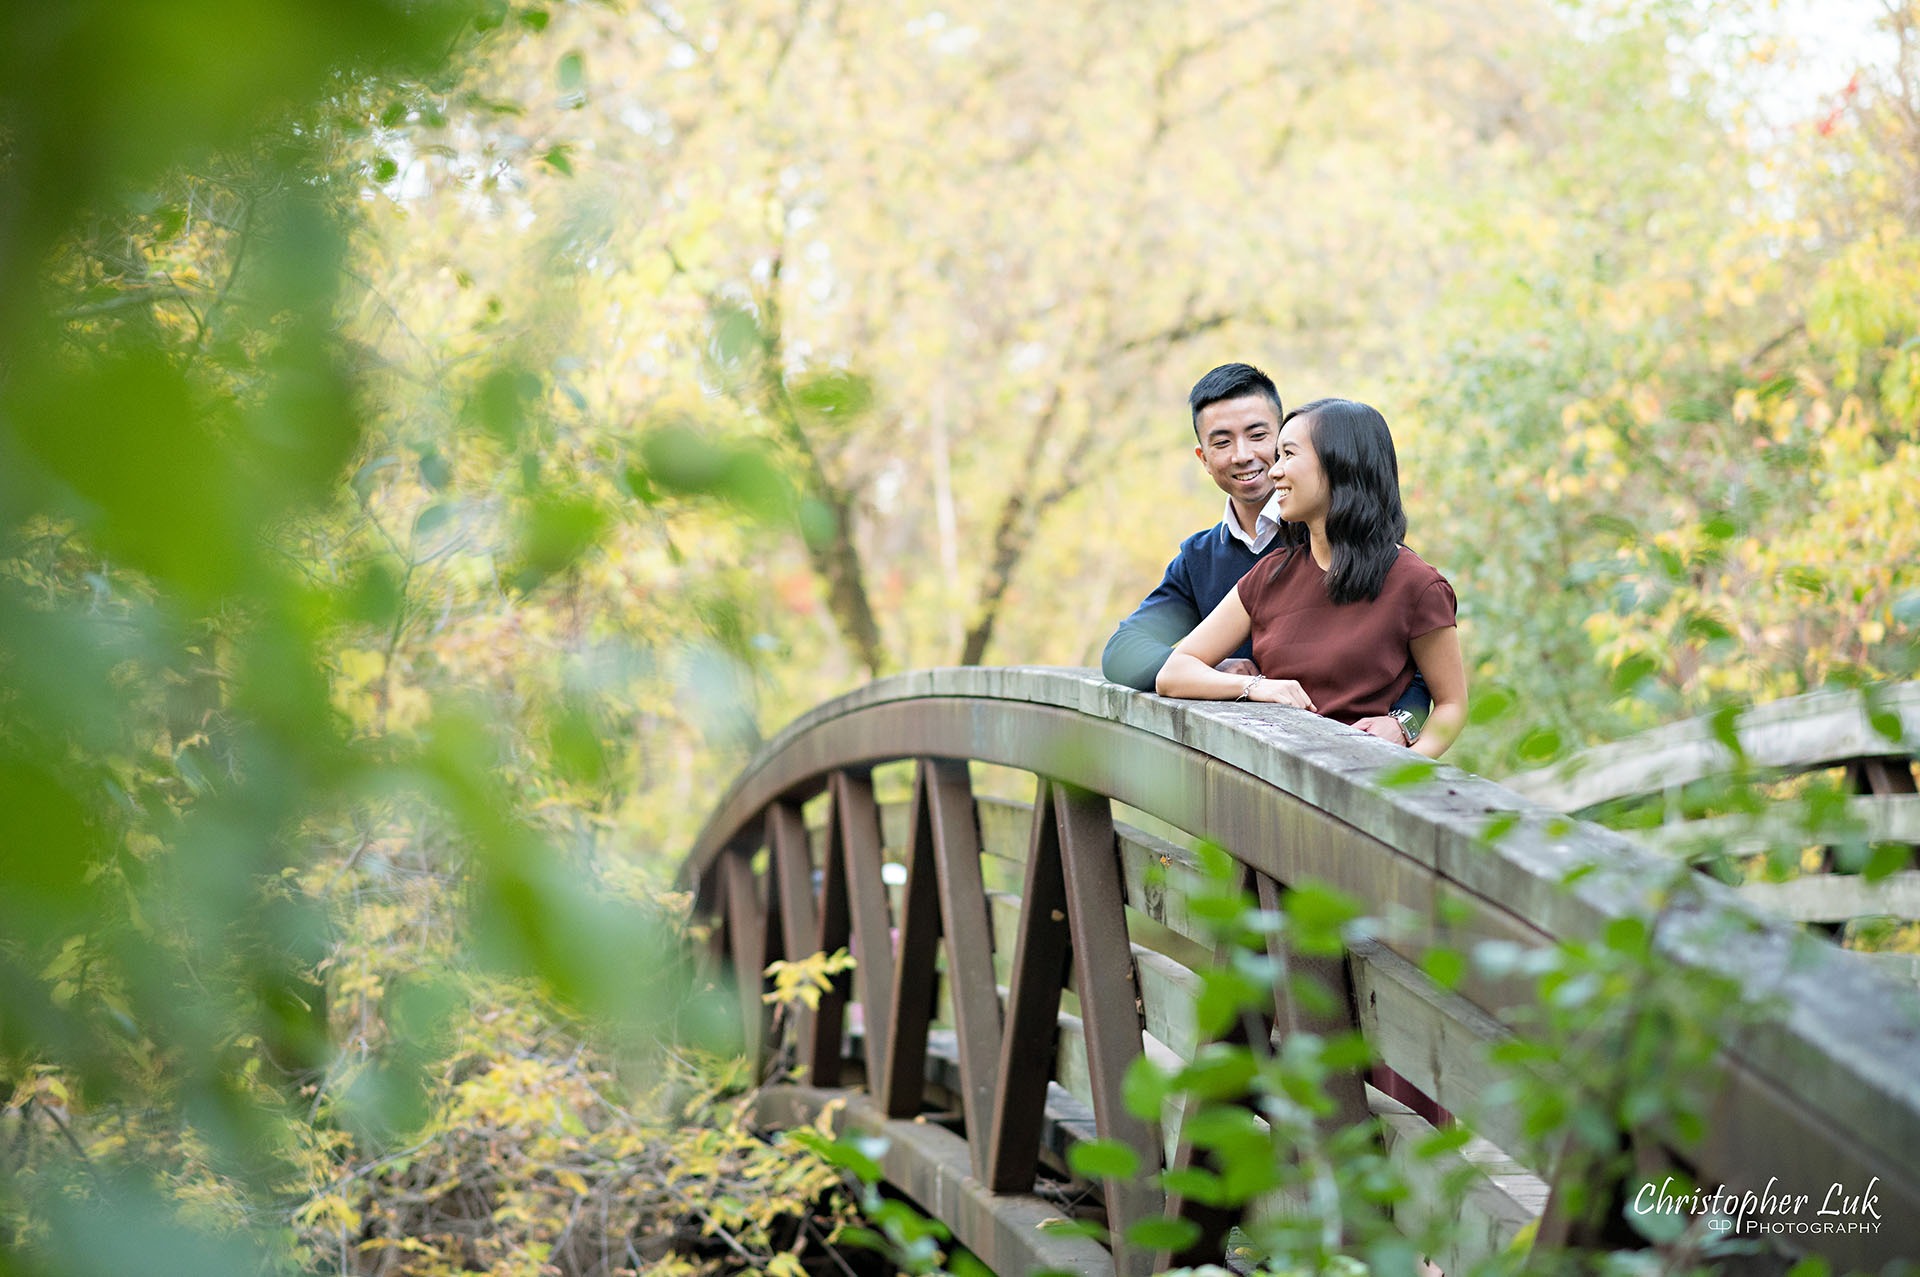 Christopher Luk Toronto Wedding Engagement Session Photographer Autumn Fall Leaves Natural Candid Photojournalistic Bride Groom Bridge Hug Hold Detail